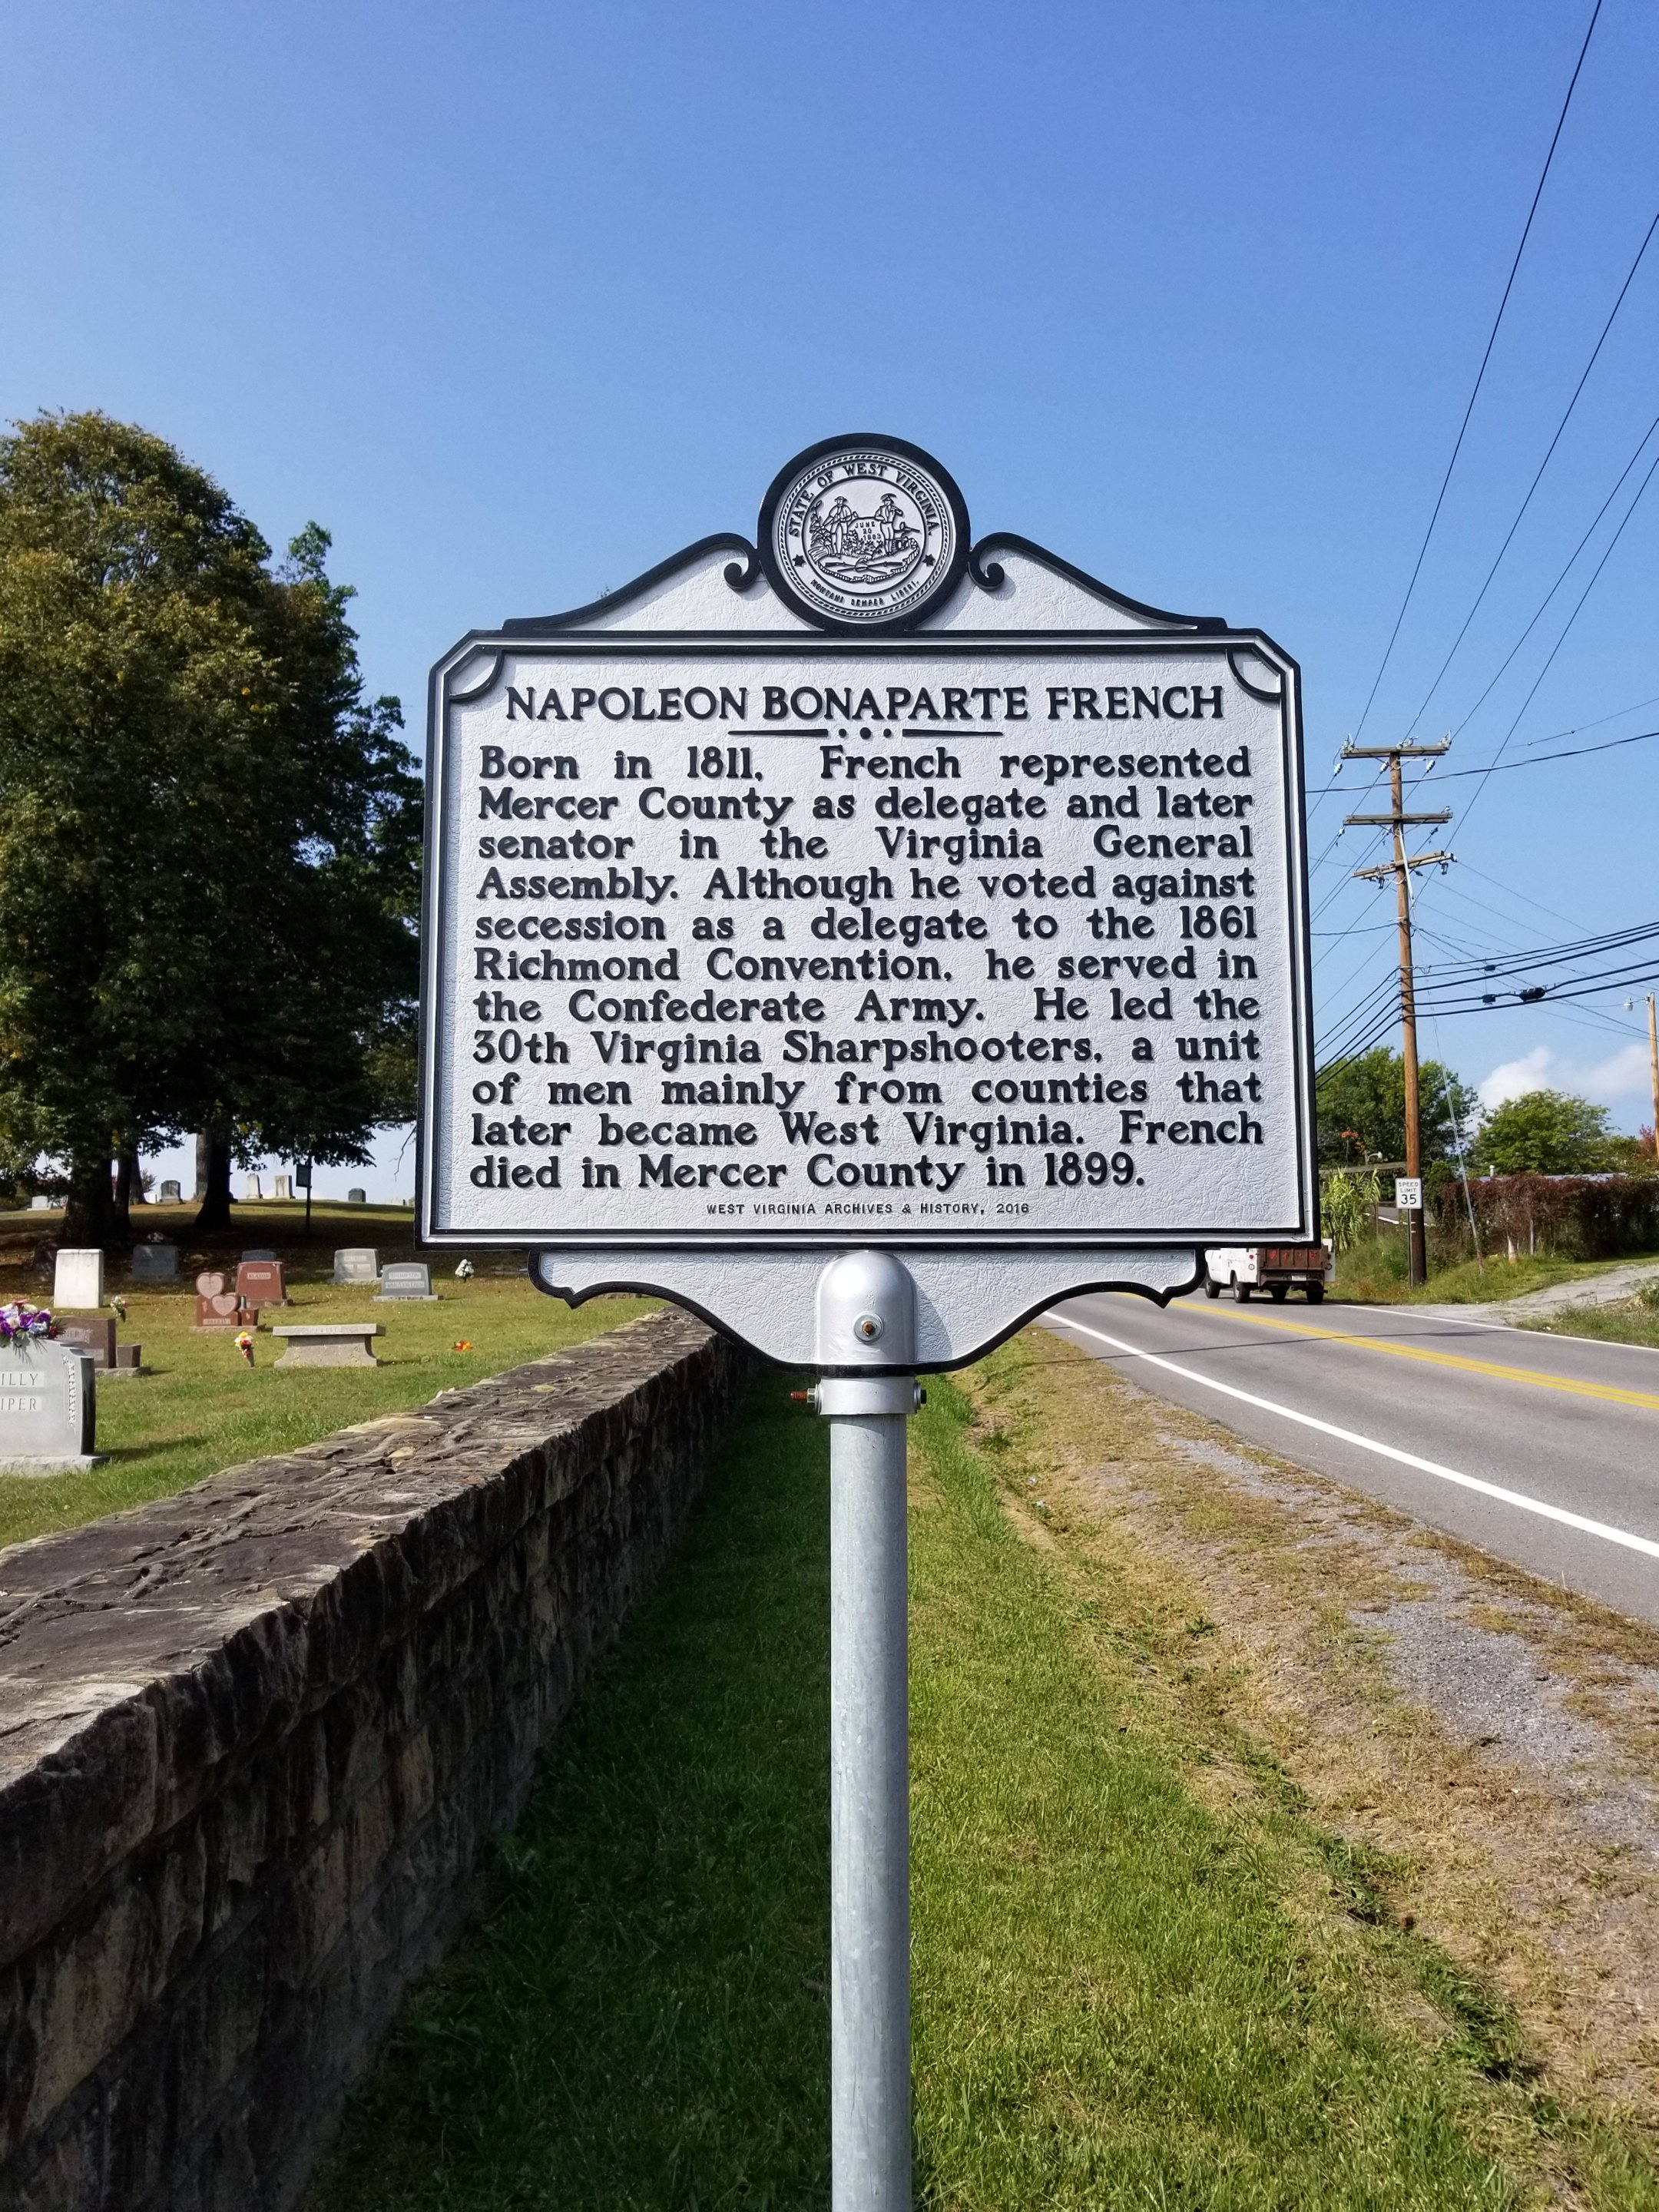 The historical marker located in Princeton, WV